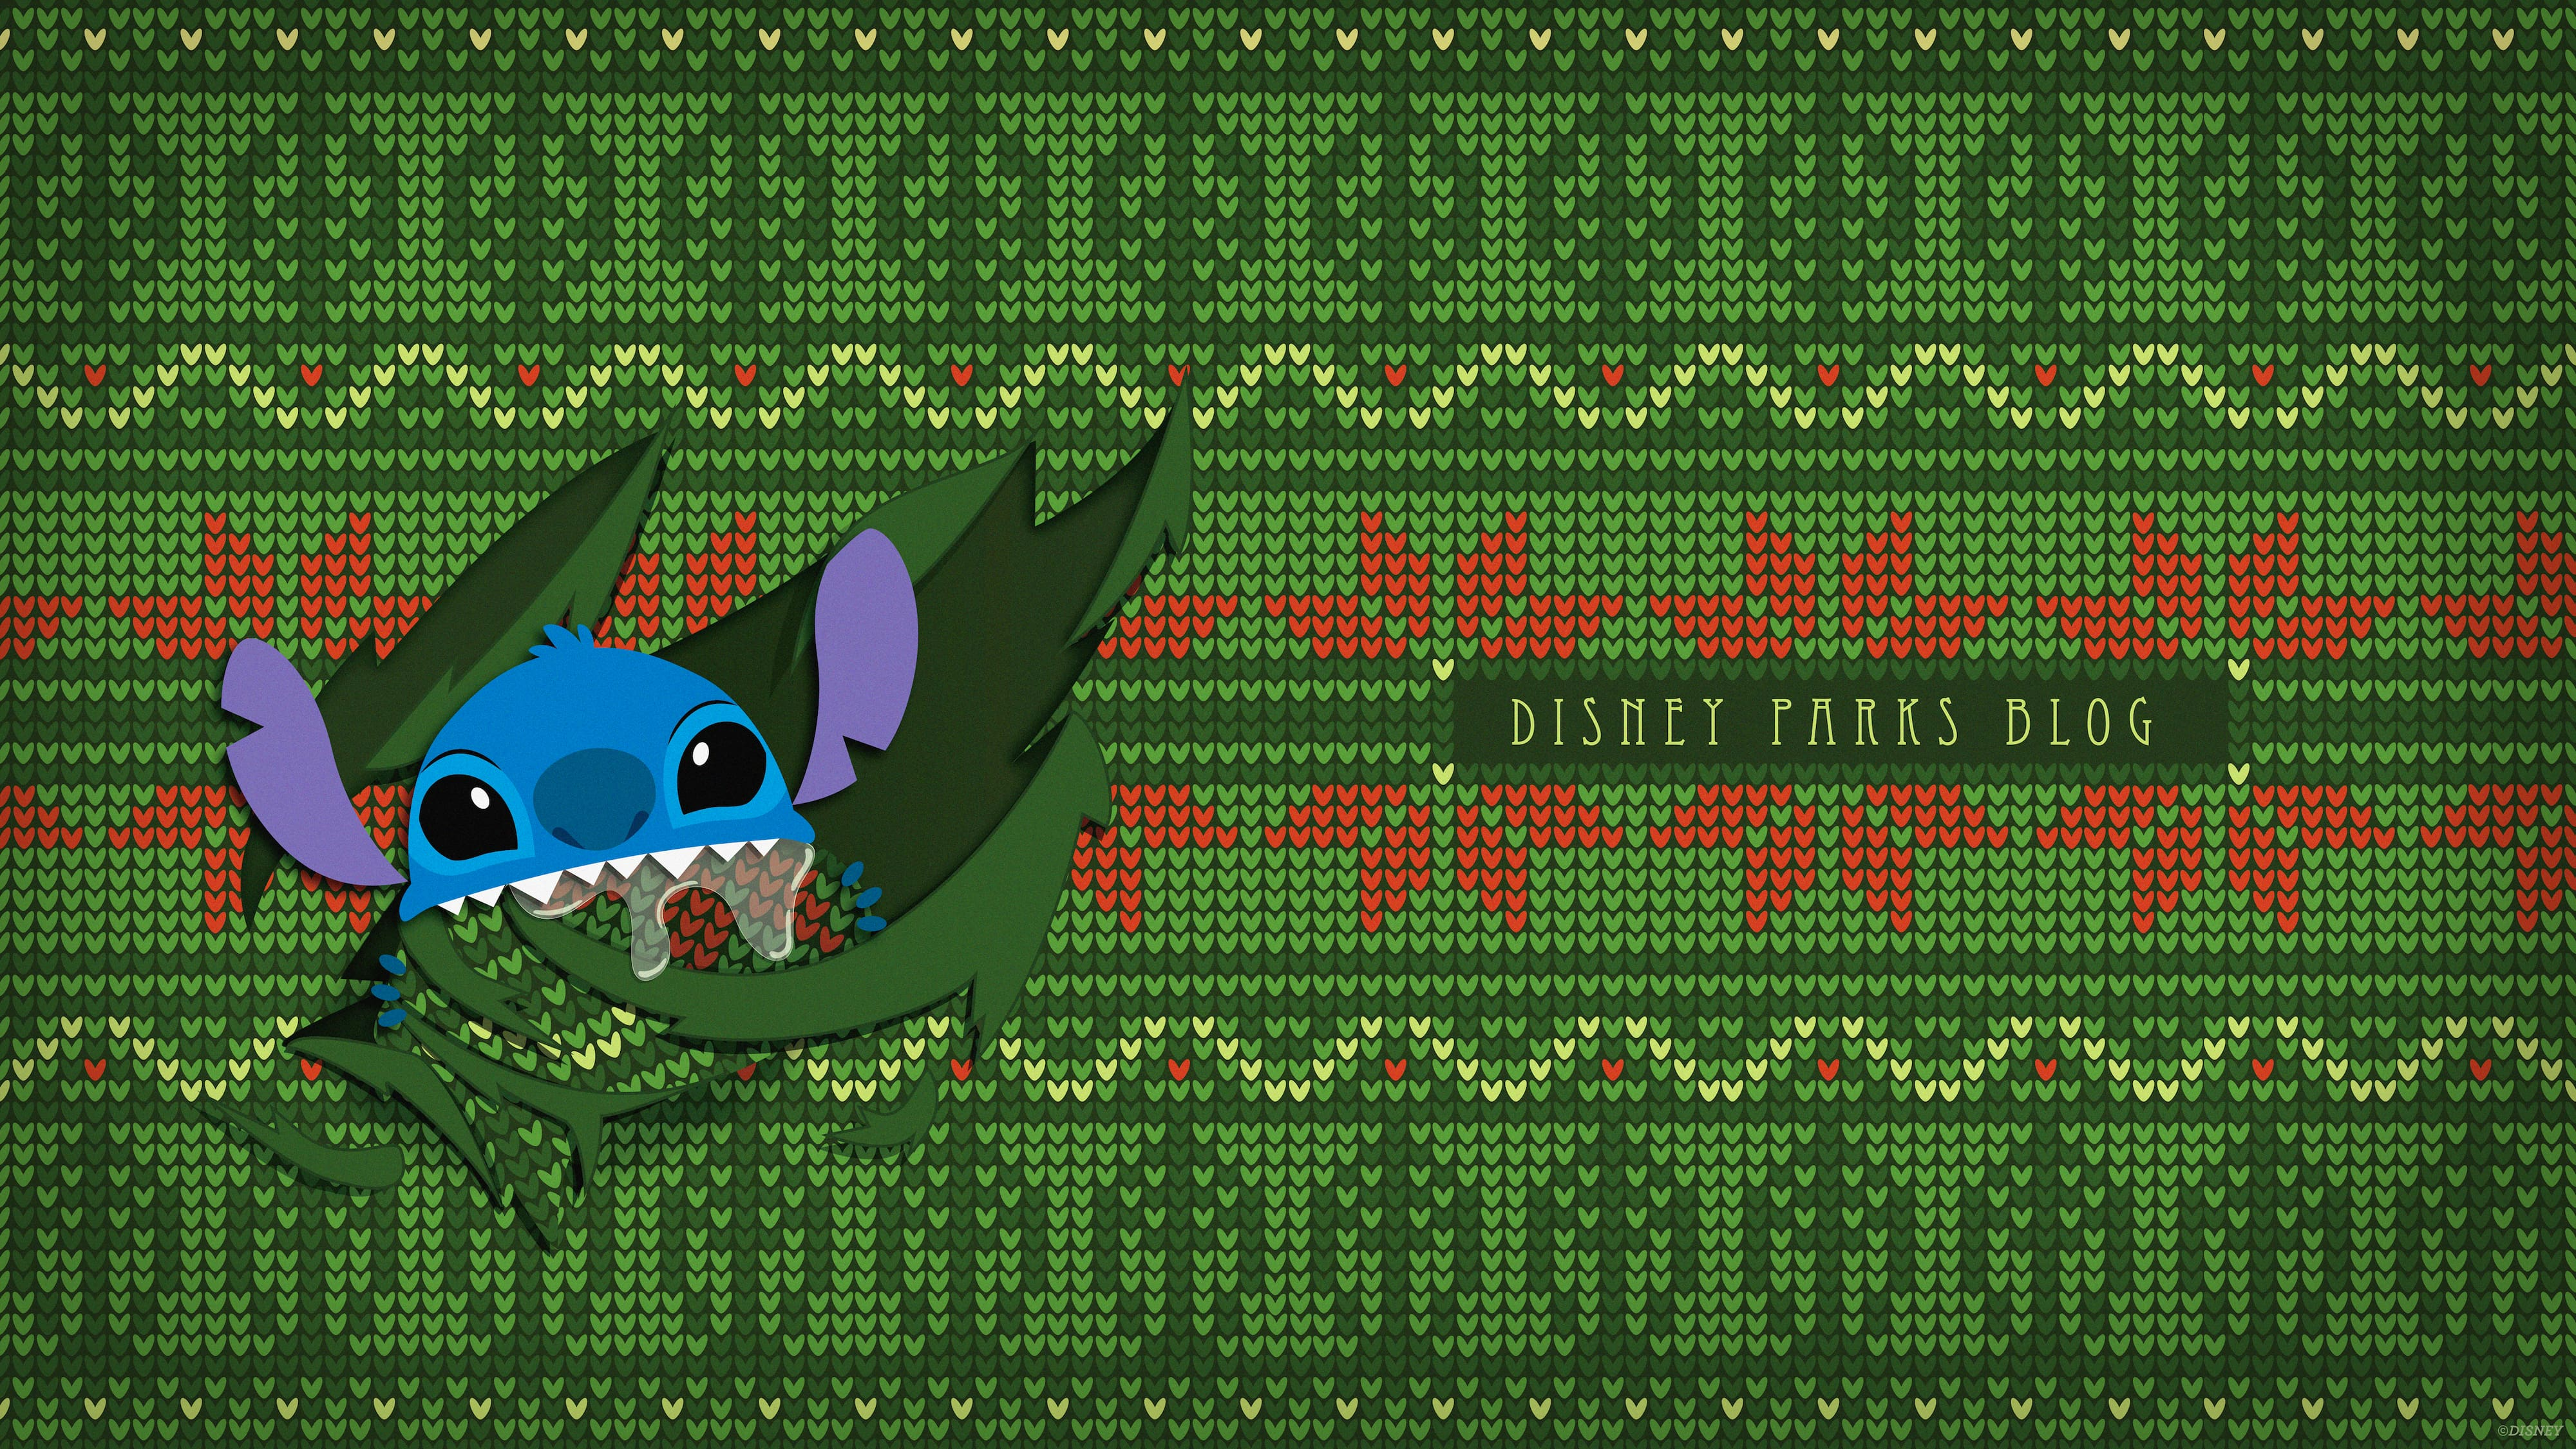 Ugly Christmas Sweater Wallpaper Featuring Stitch Desktop